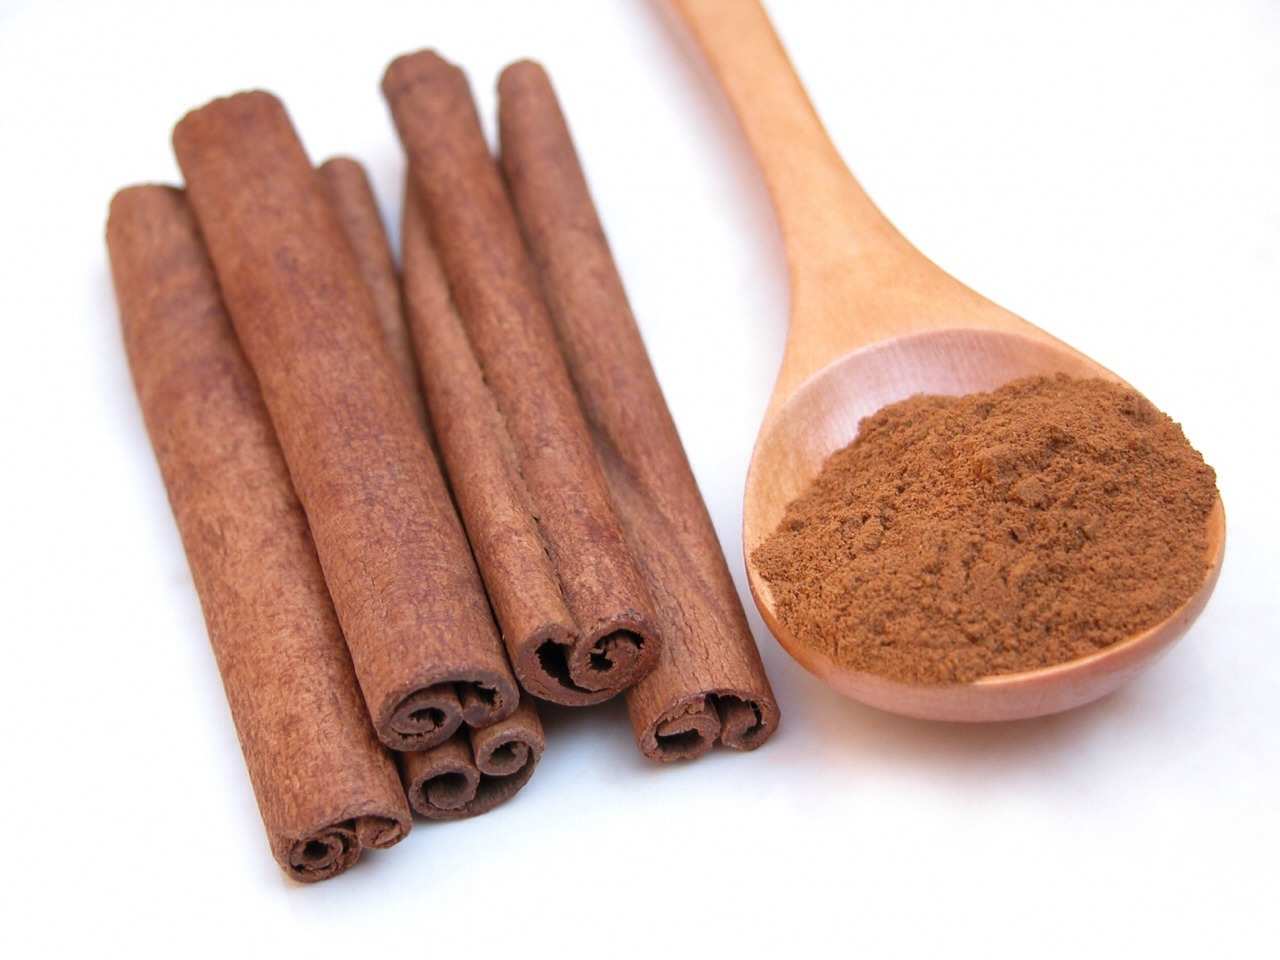 tsp of cinnamon powder